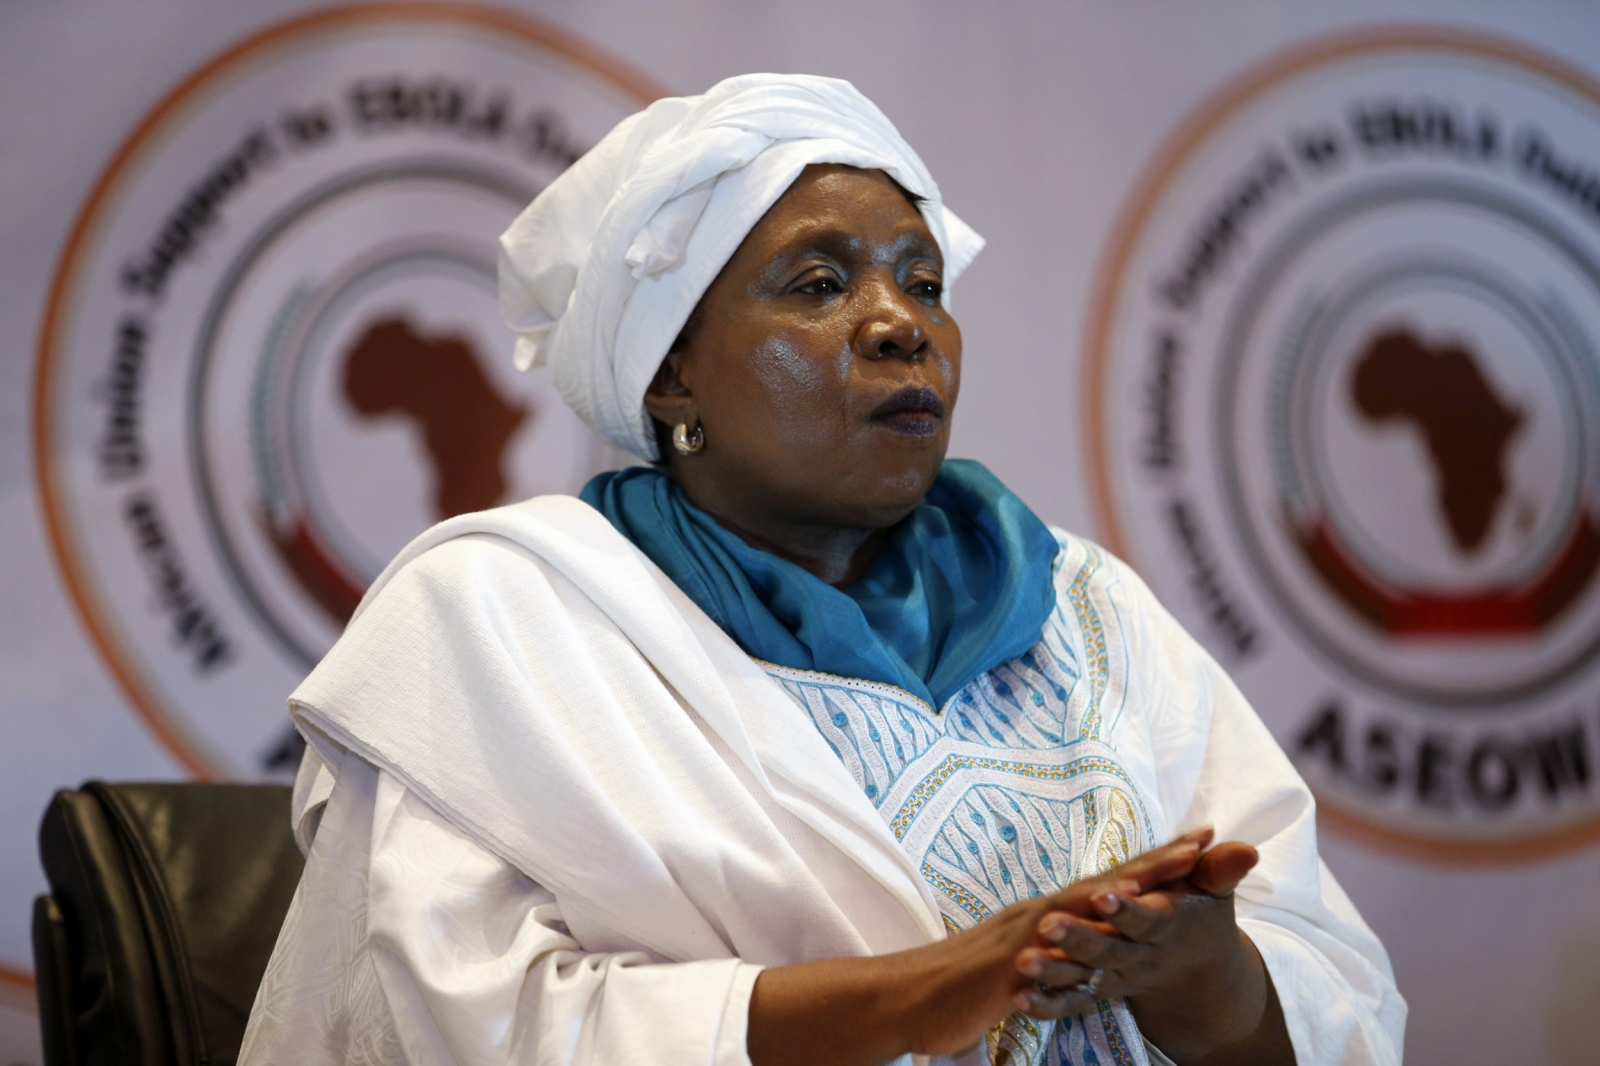 Head of African Union says Trump's refugee ban is a 'test to our unity and solidarity'